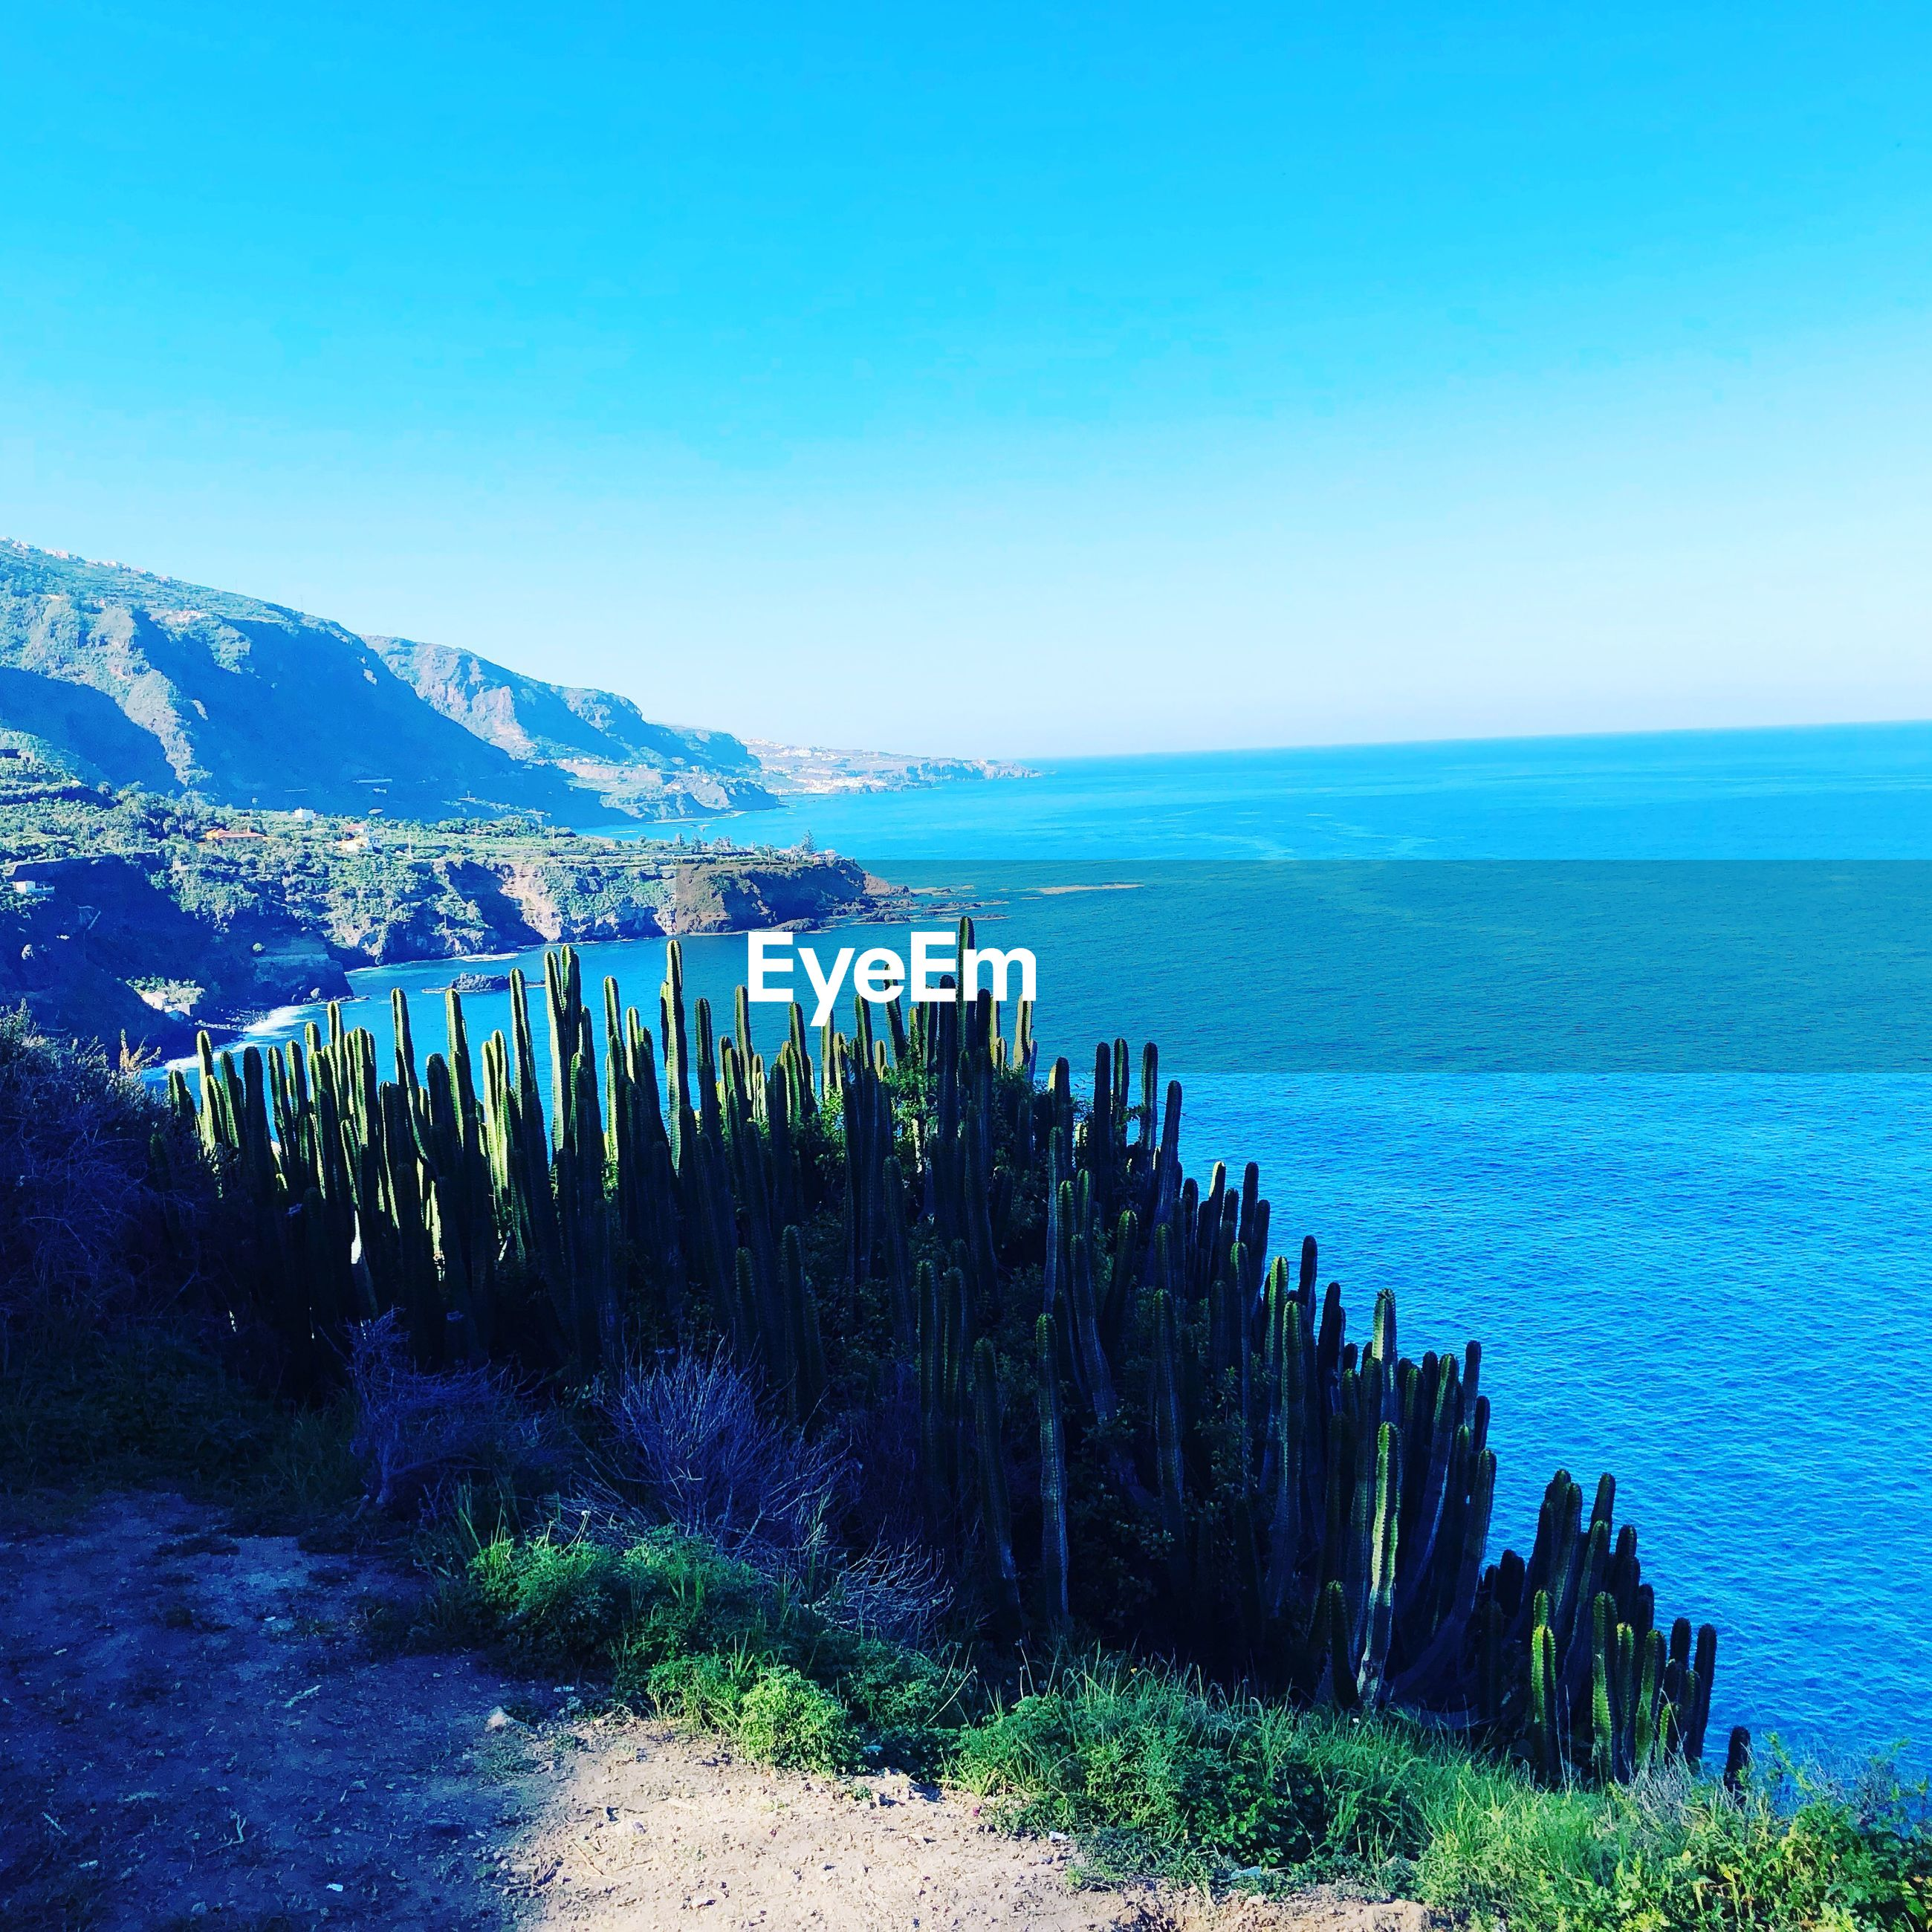 PANORAMIC SHOT OF SEA AGAINST CLEAR SKY